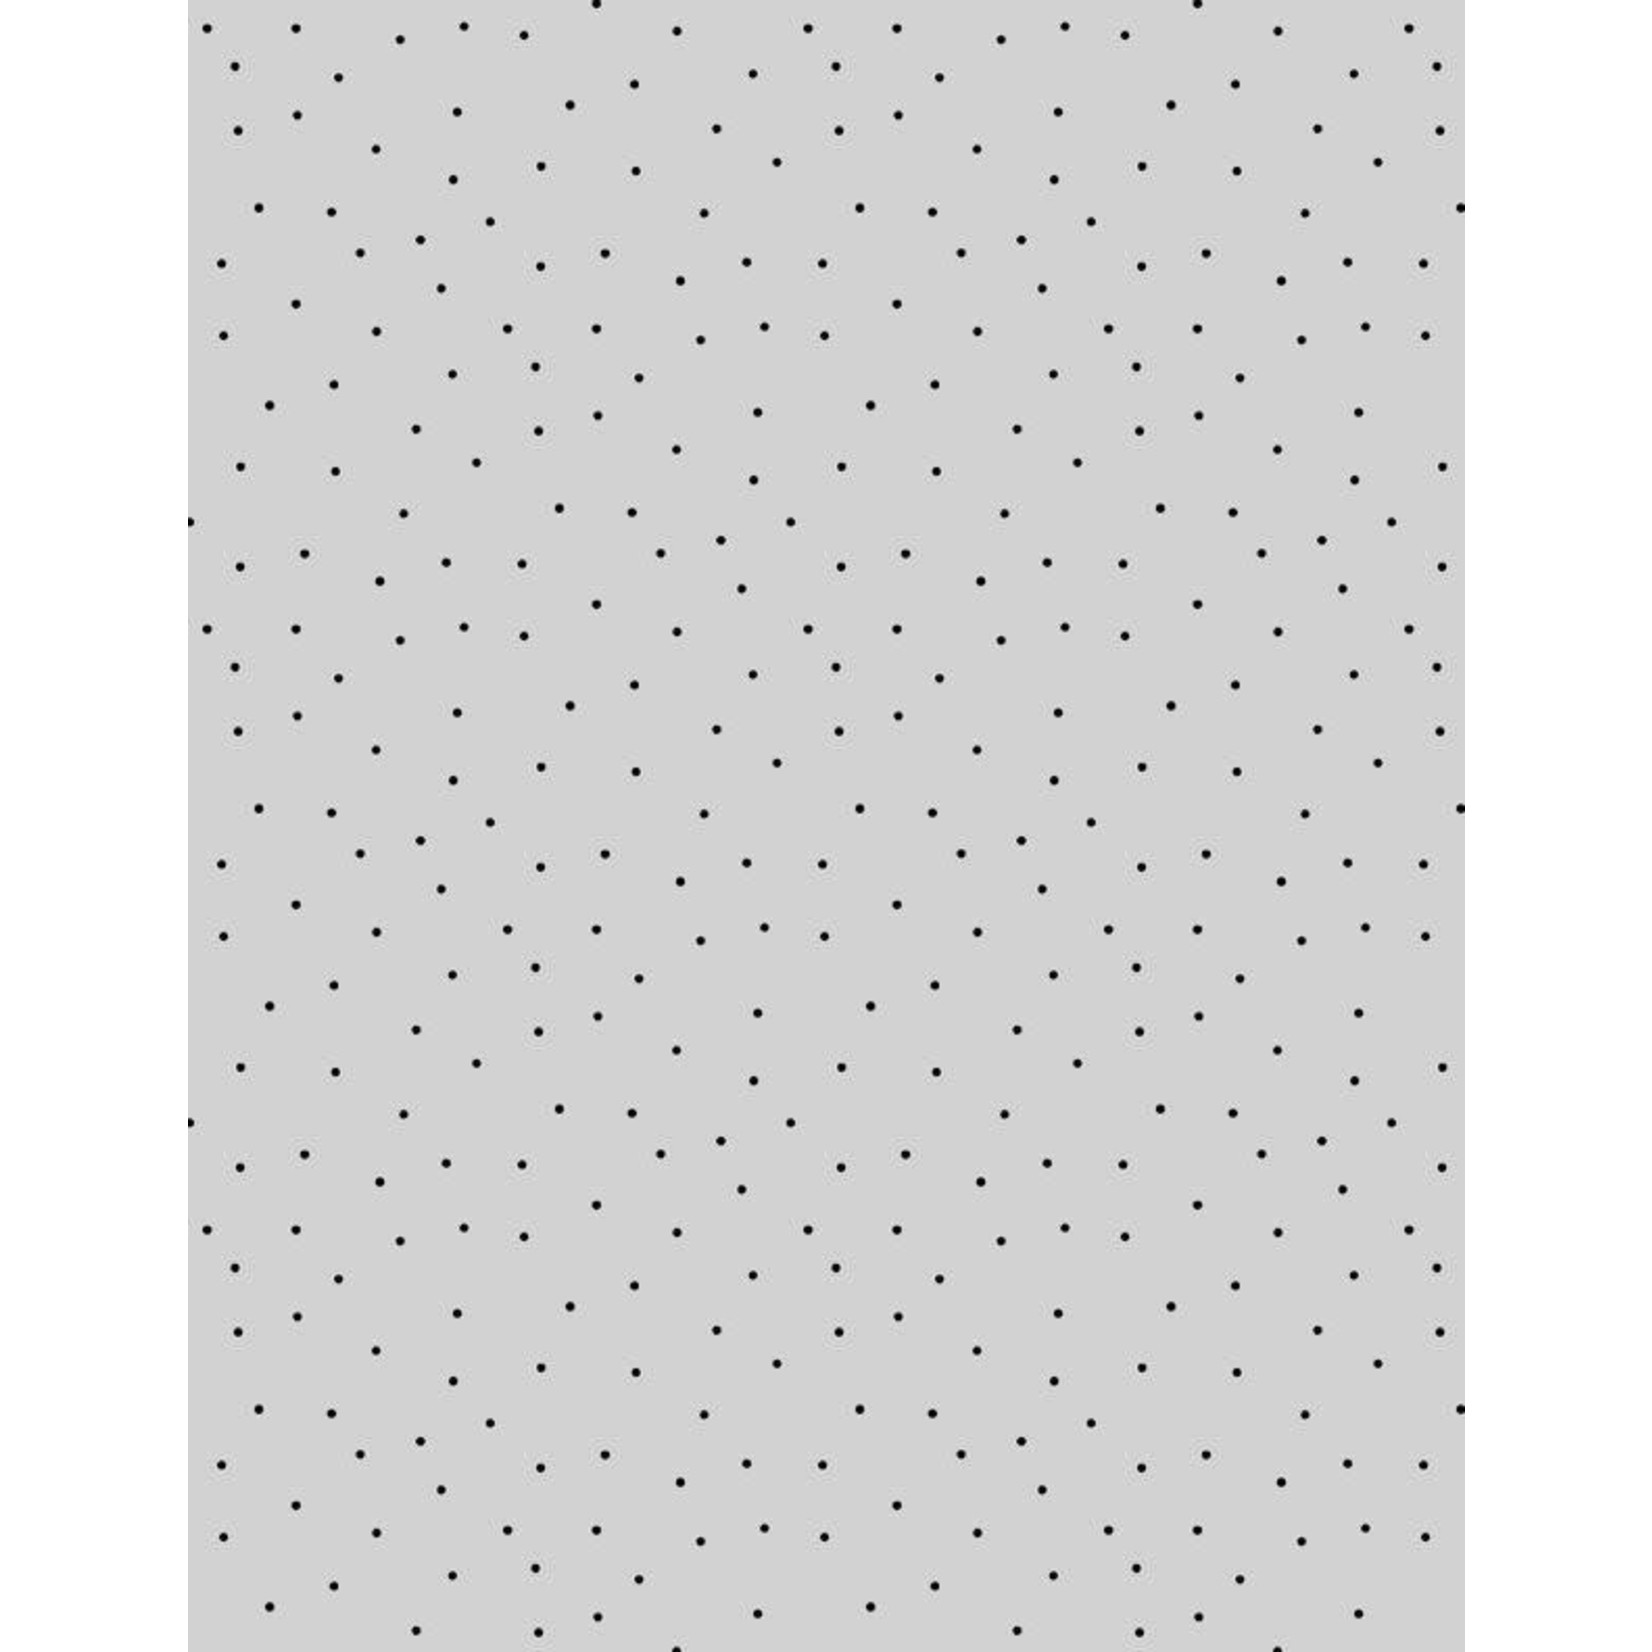 WILMINGTON PRINTS PINDOTS, GREY/BLACK (919) PER CM OR $18 PER M